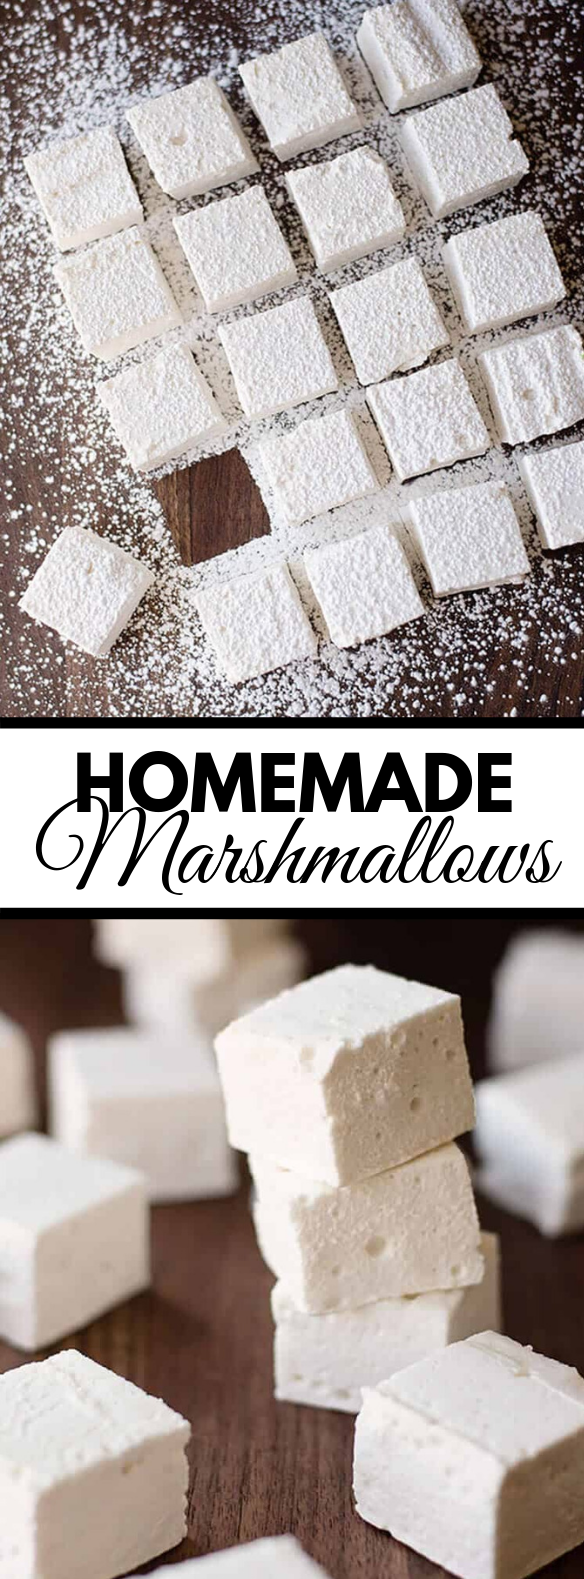 HOMEMADE MARSHMALLOWS #desserts #easy